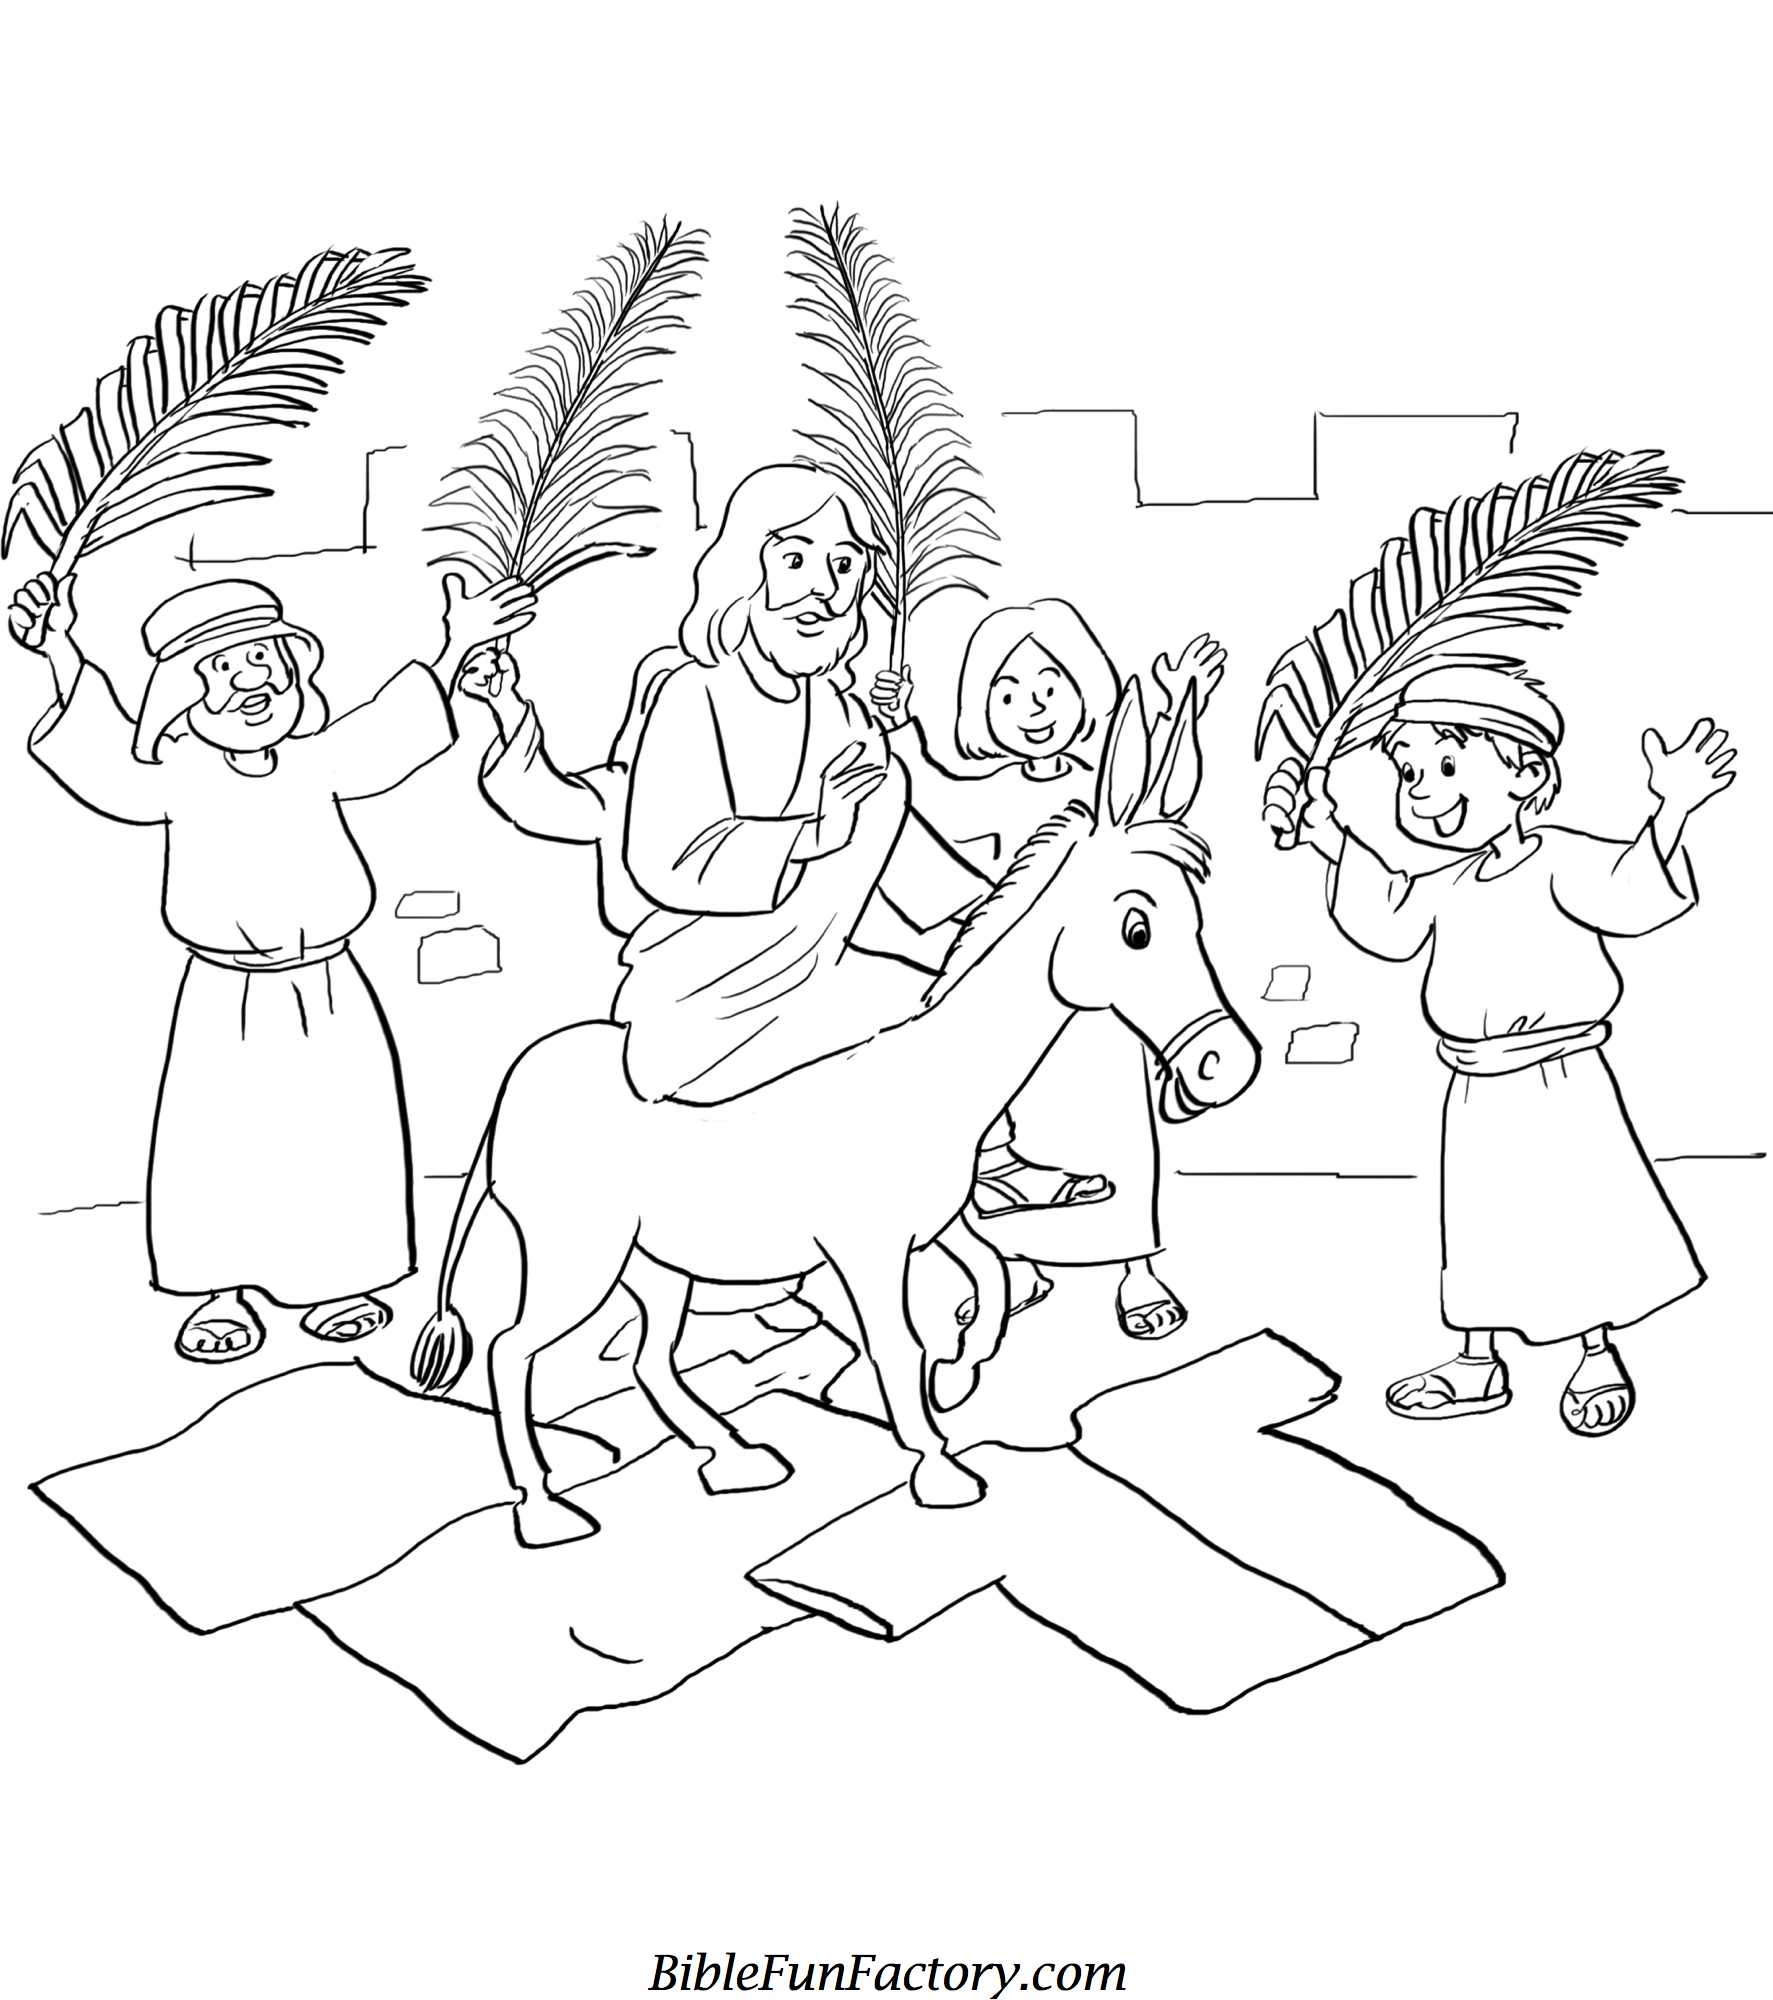 Sunday School Bible Lesson Clipart Black And White.